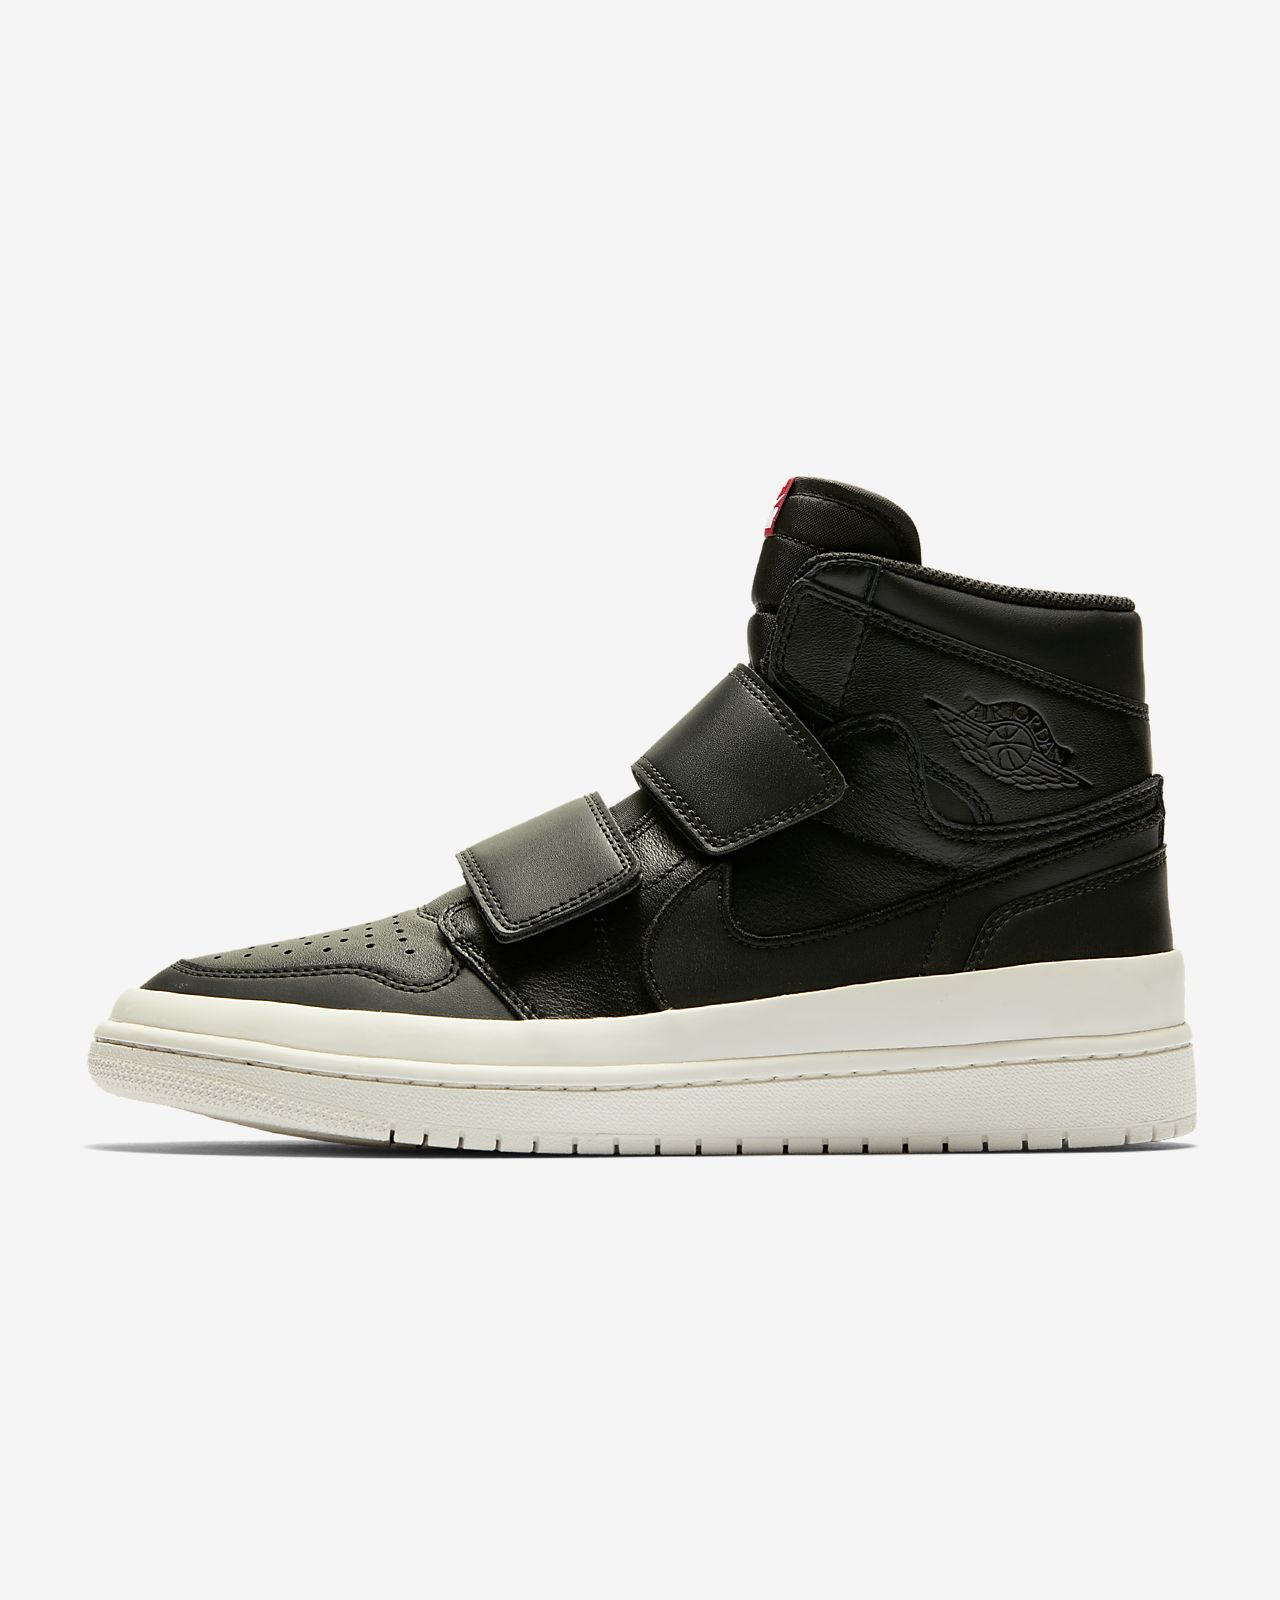 Pánská bota Air Jordan 1 Retro High Double Strap